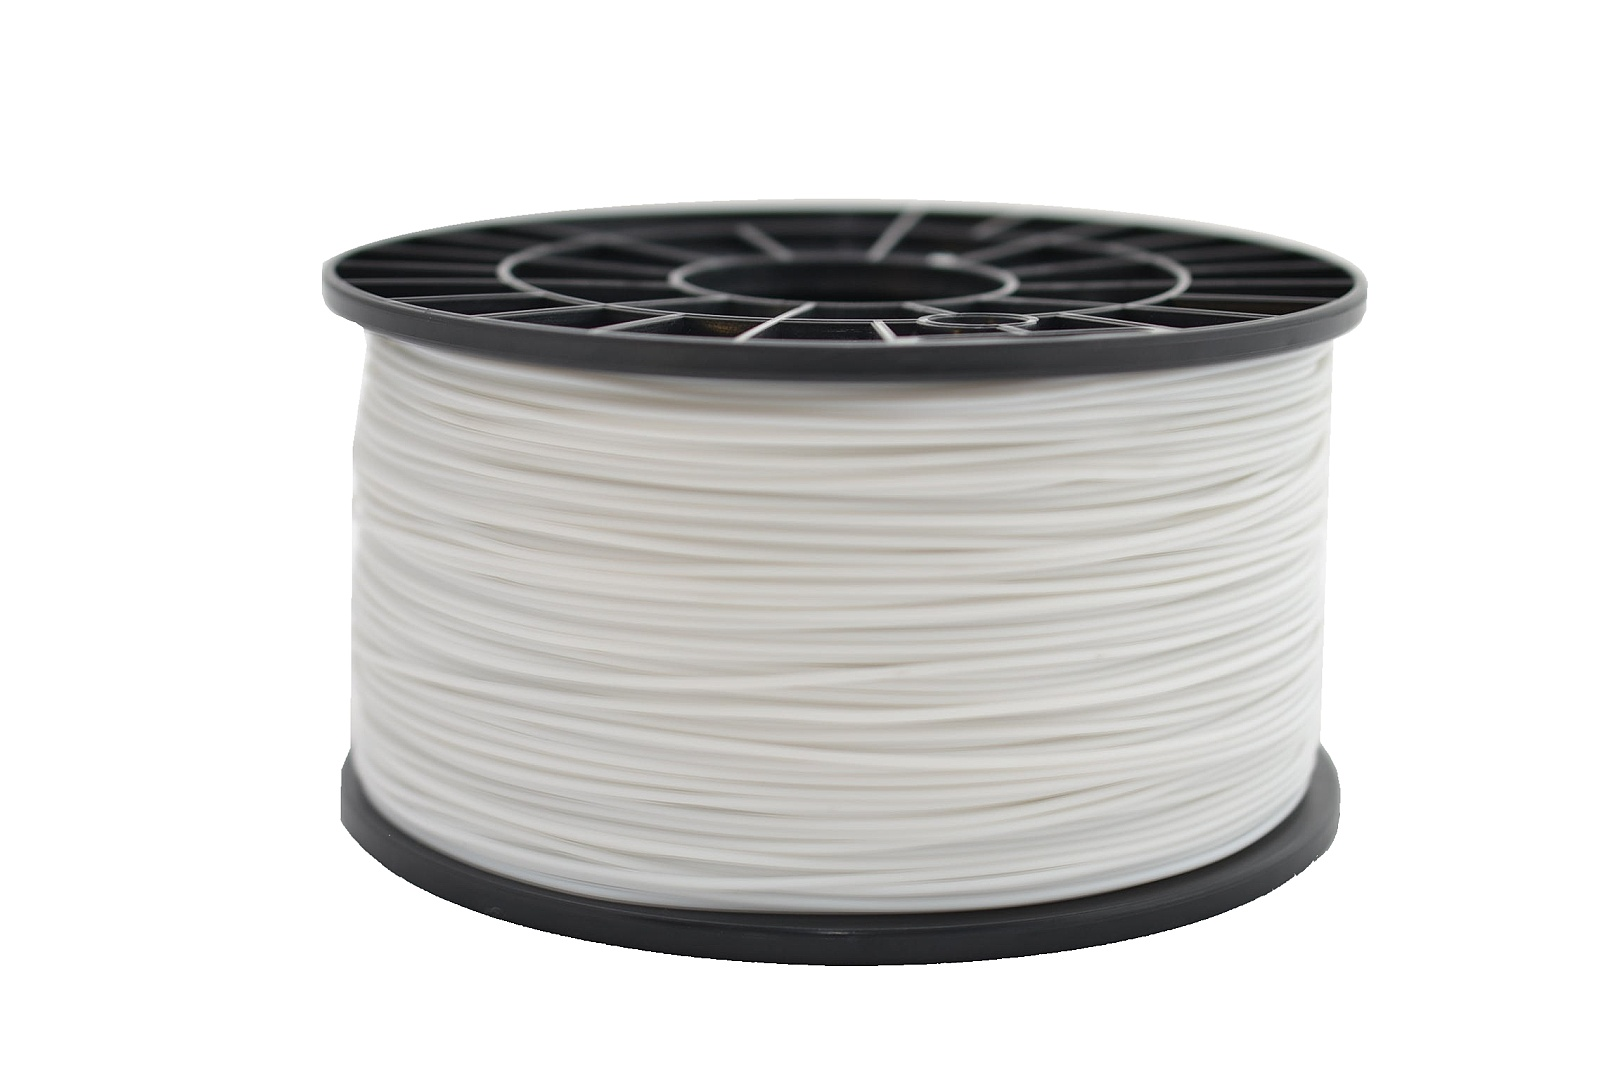 Polypropylen filament bílá 1,75 mm 0,9 kg